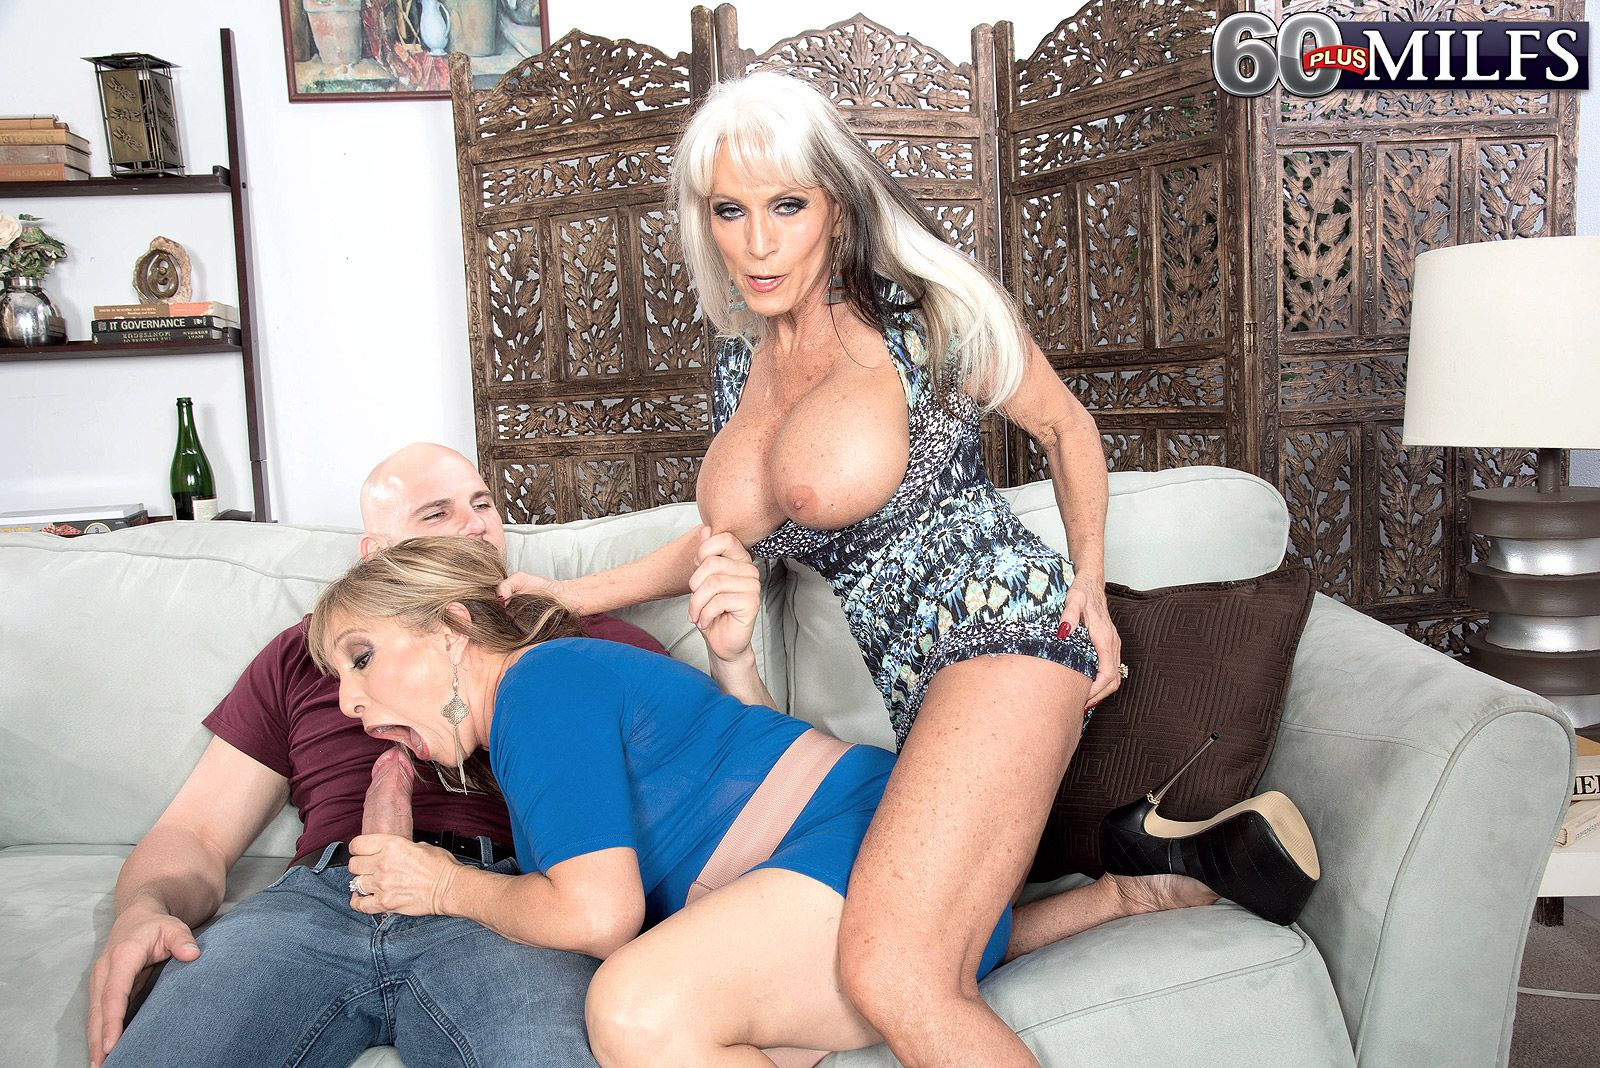 Hot 60 plus ladies Sally D'Angelo and Luna Azul suck off a large dick togther